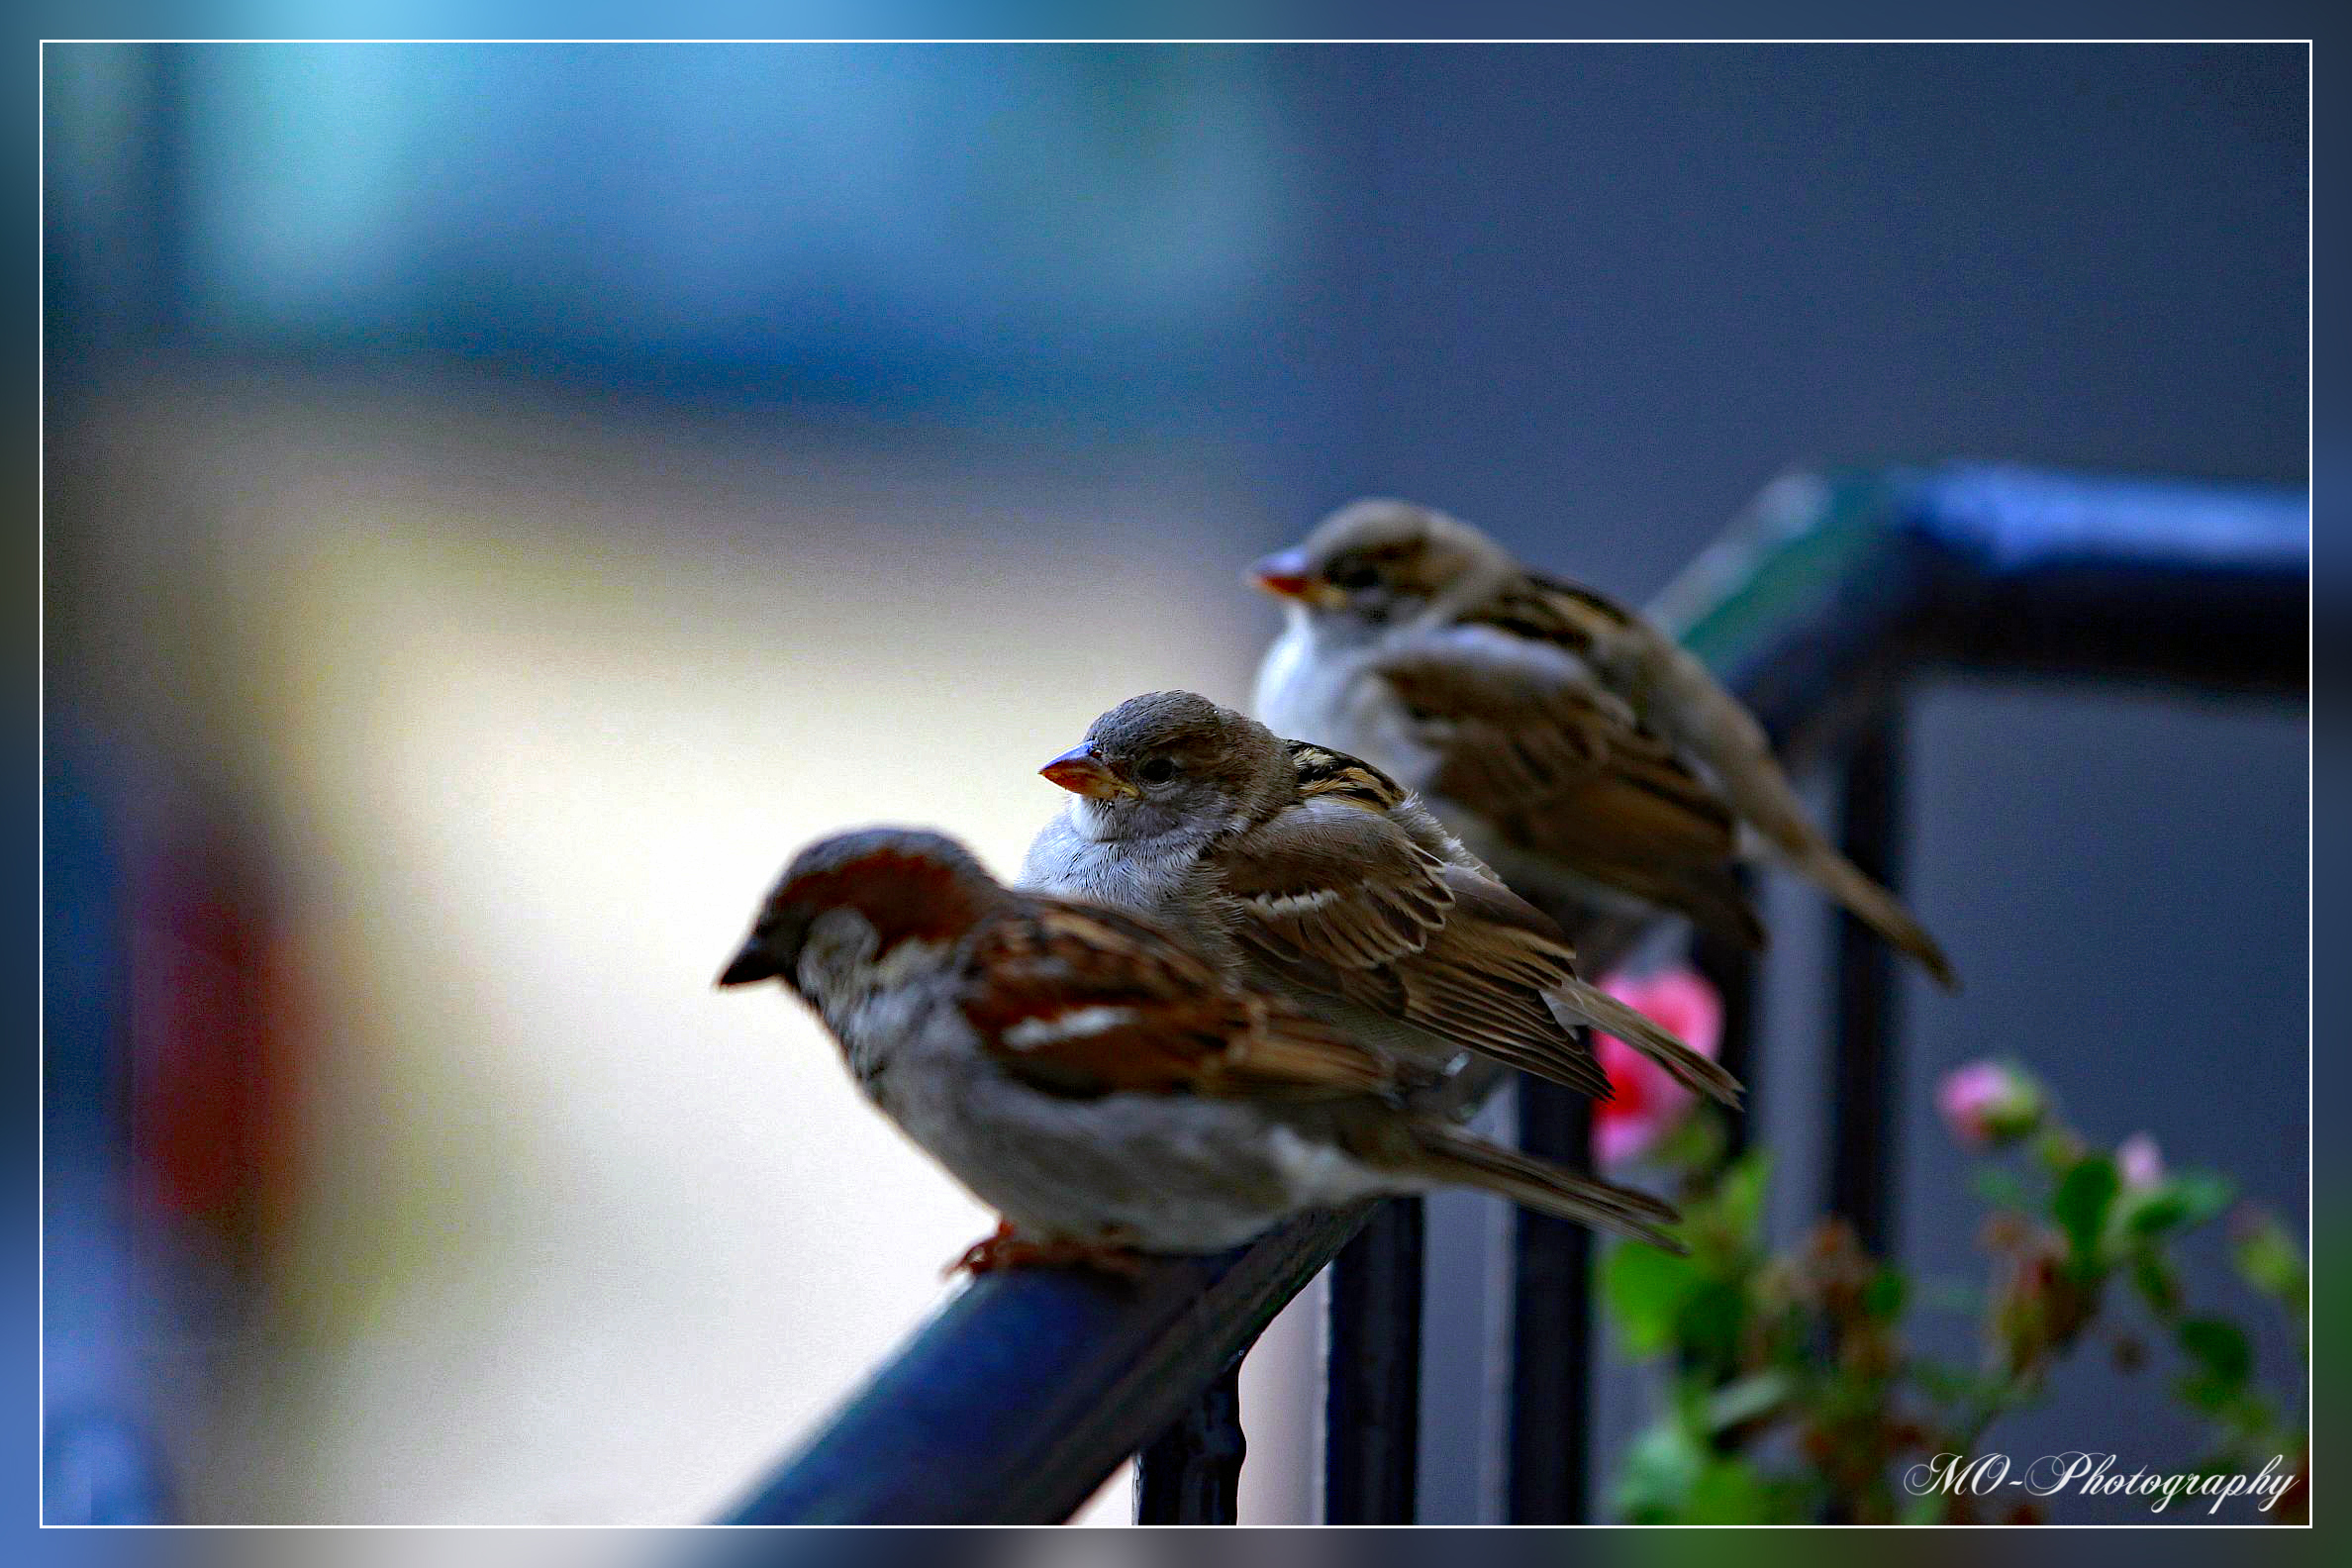 Sparrows (Mussen)